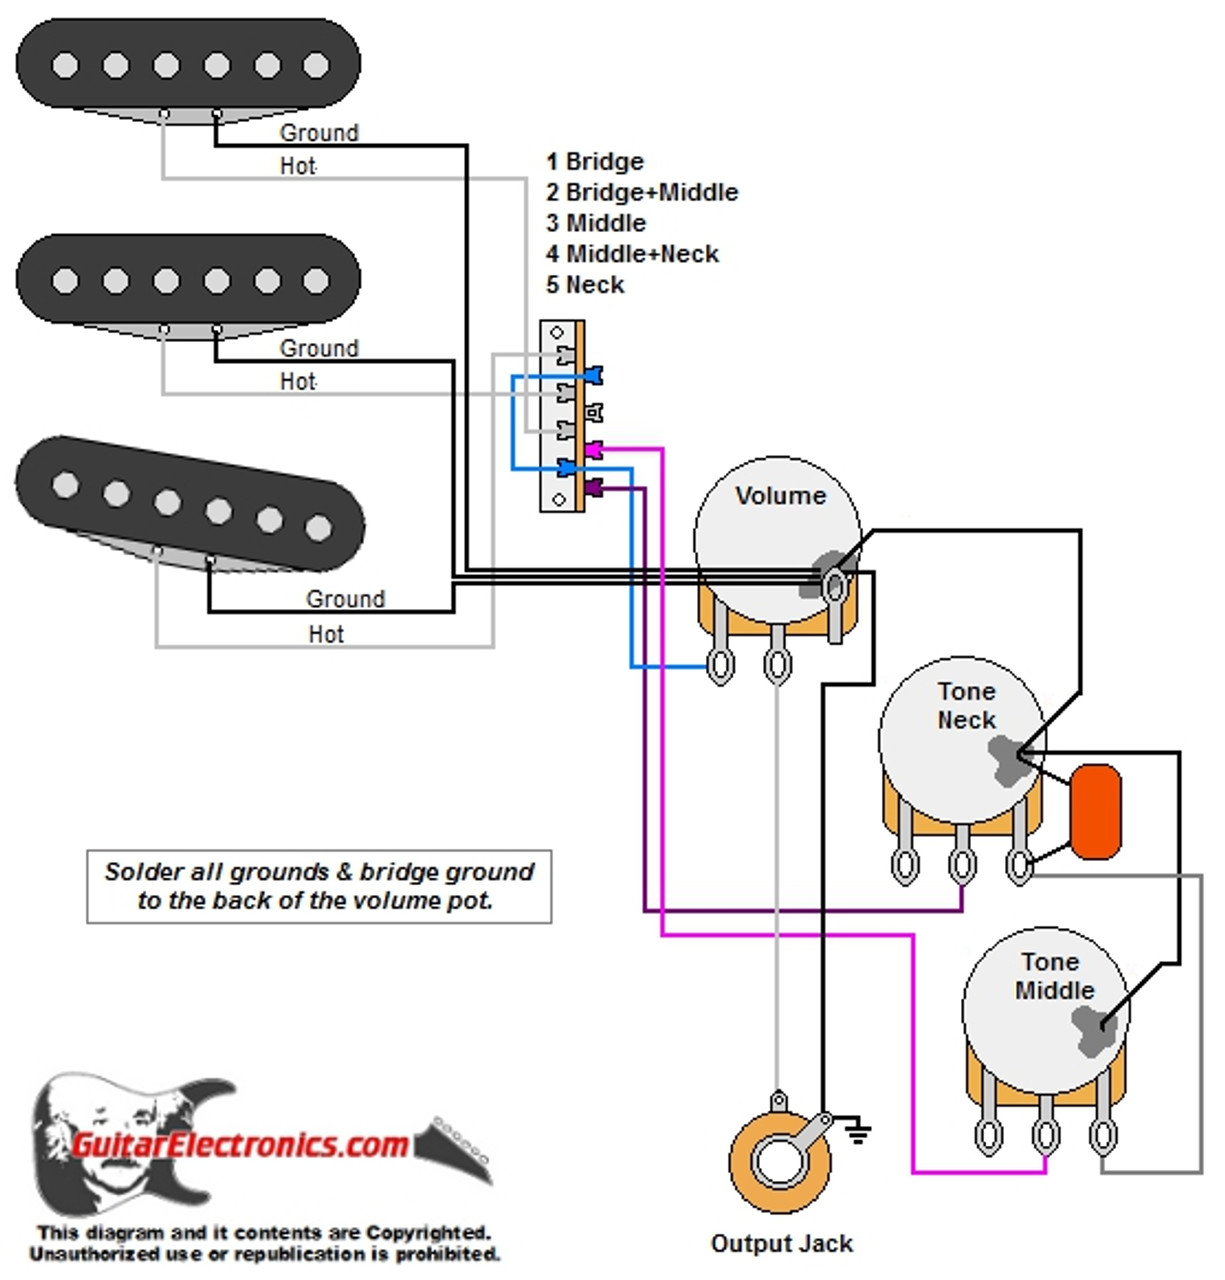 strat style guitar wiring diagram Single Pickup Guitar Wiring Diagram